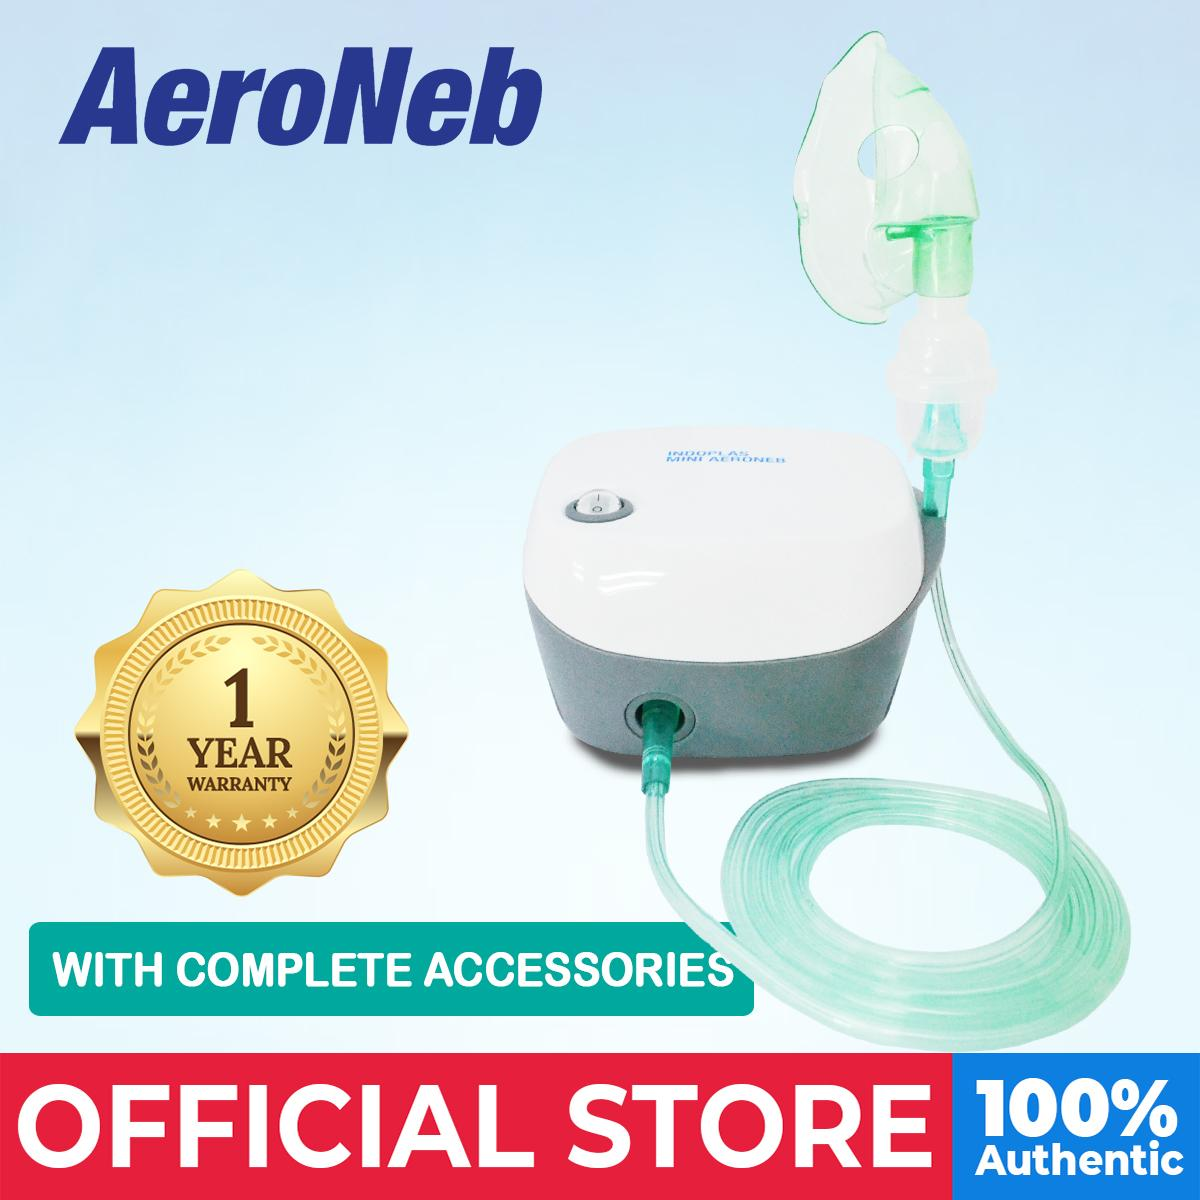 Indoplas Aeroneb Mini Nebulizer - Japan Quality By Medical Supplies Philippines.